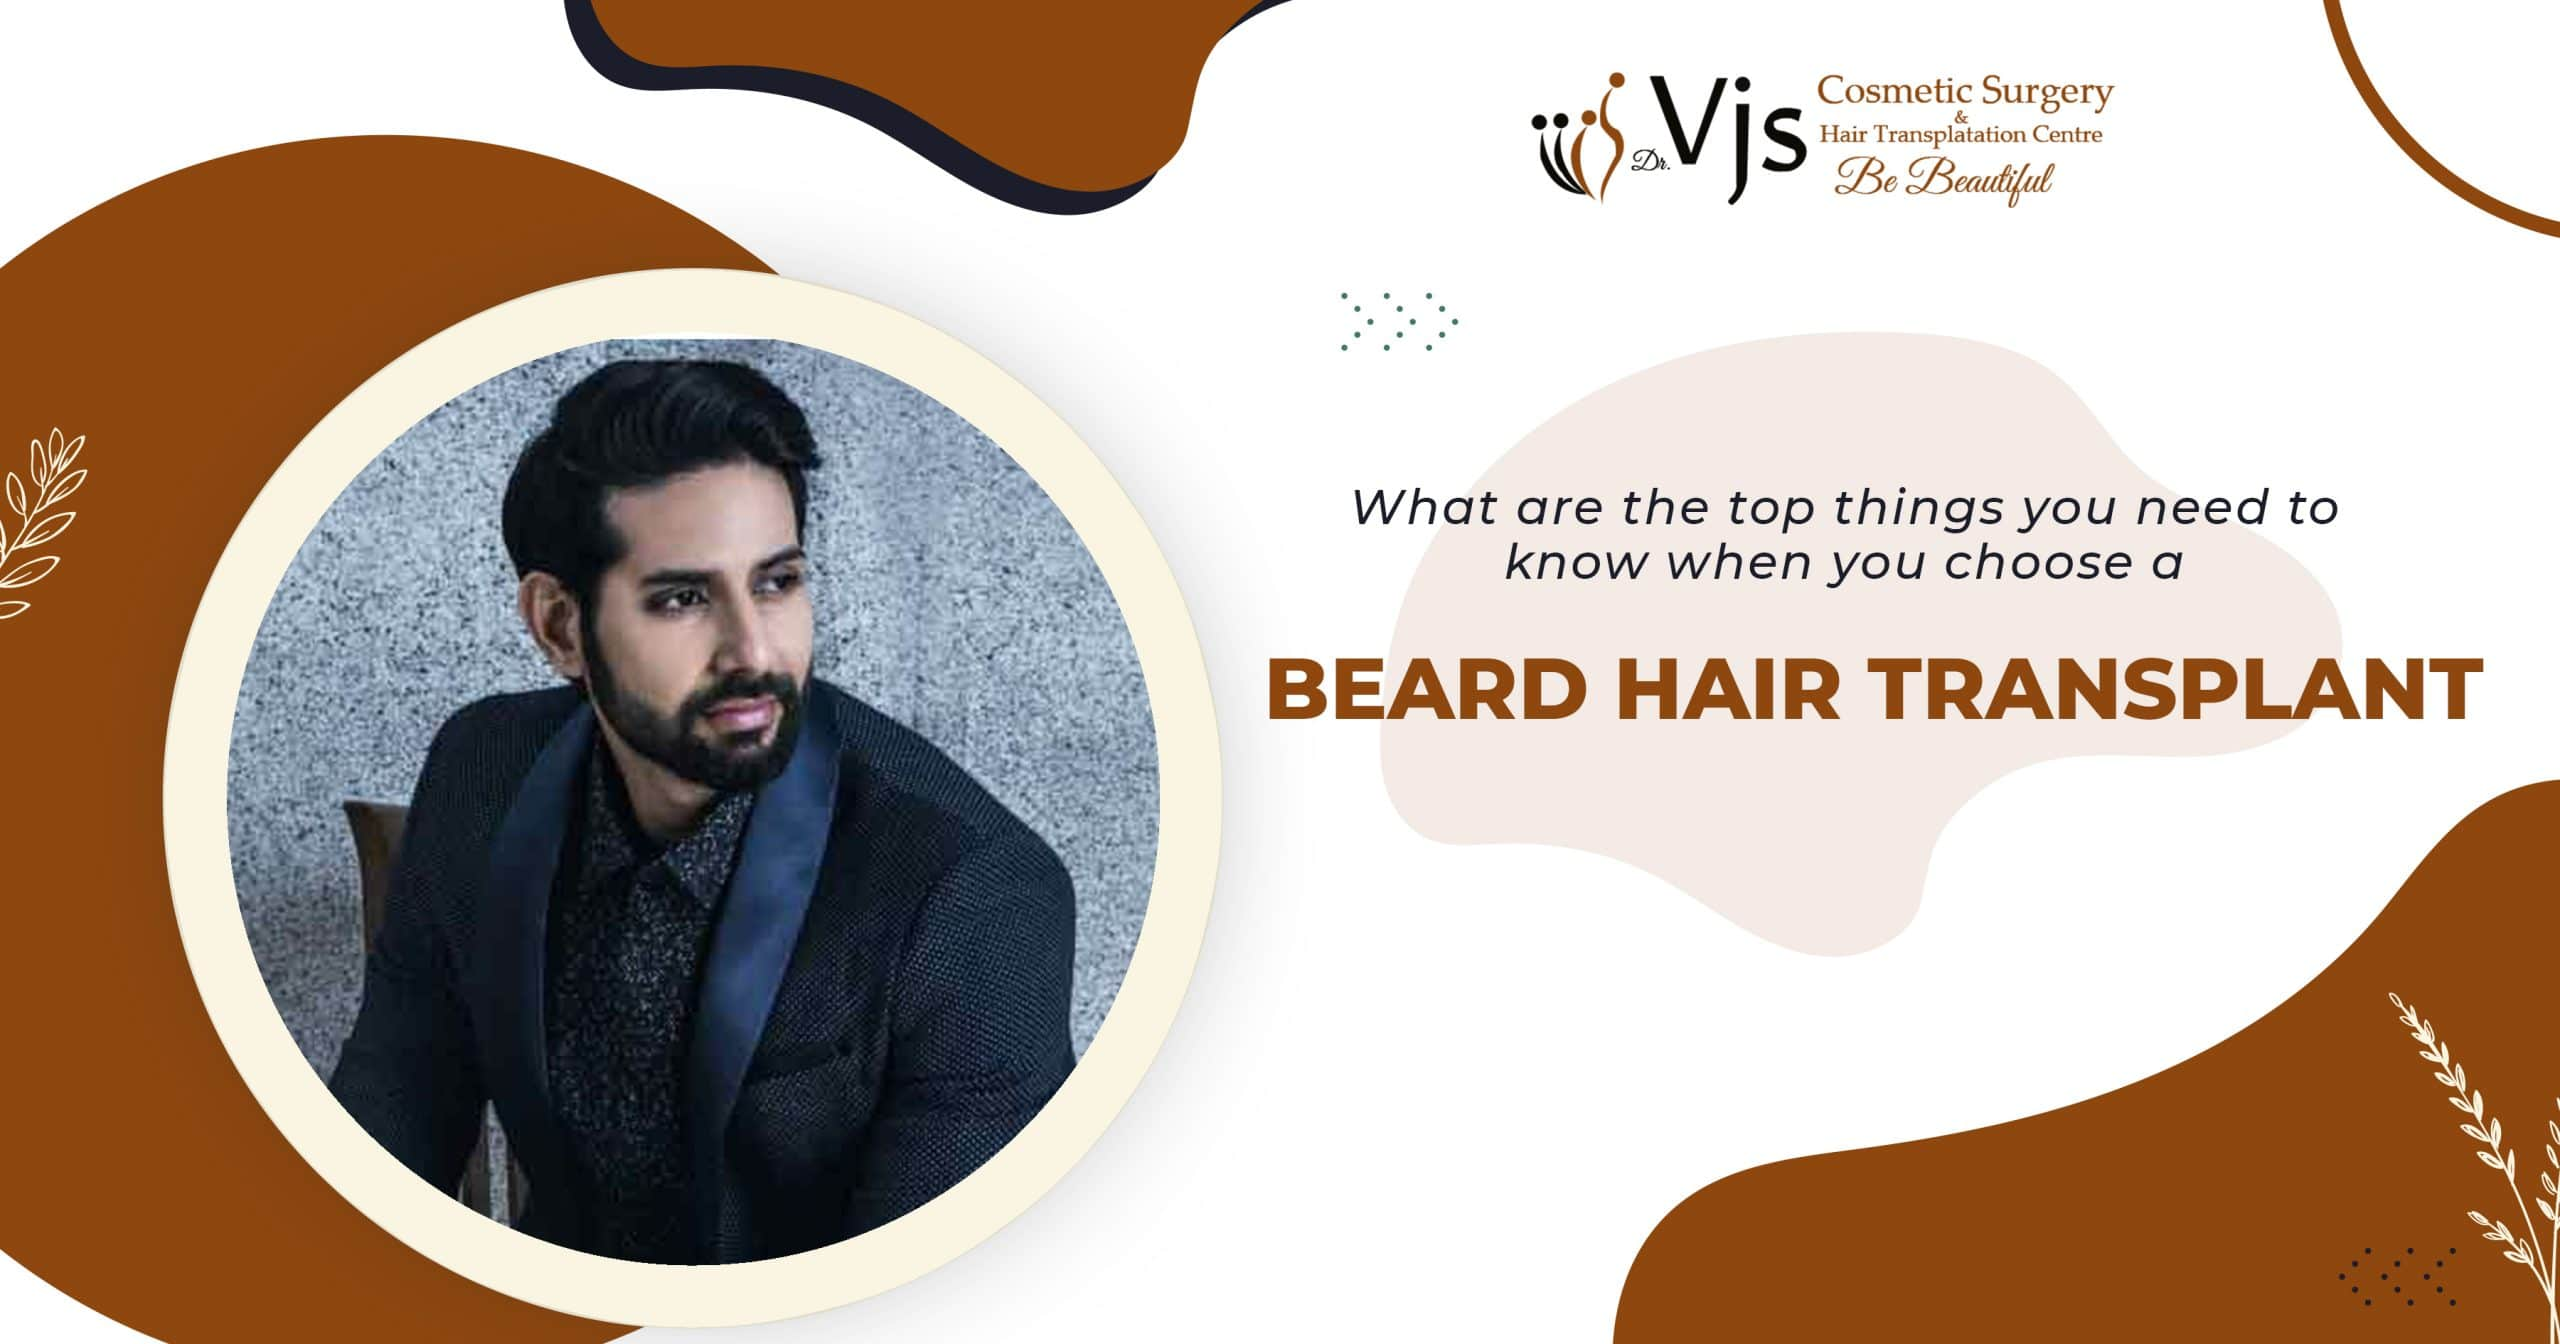 Everything you need to know about the treatment of beard hair transplant in India